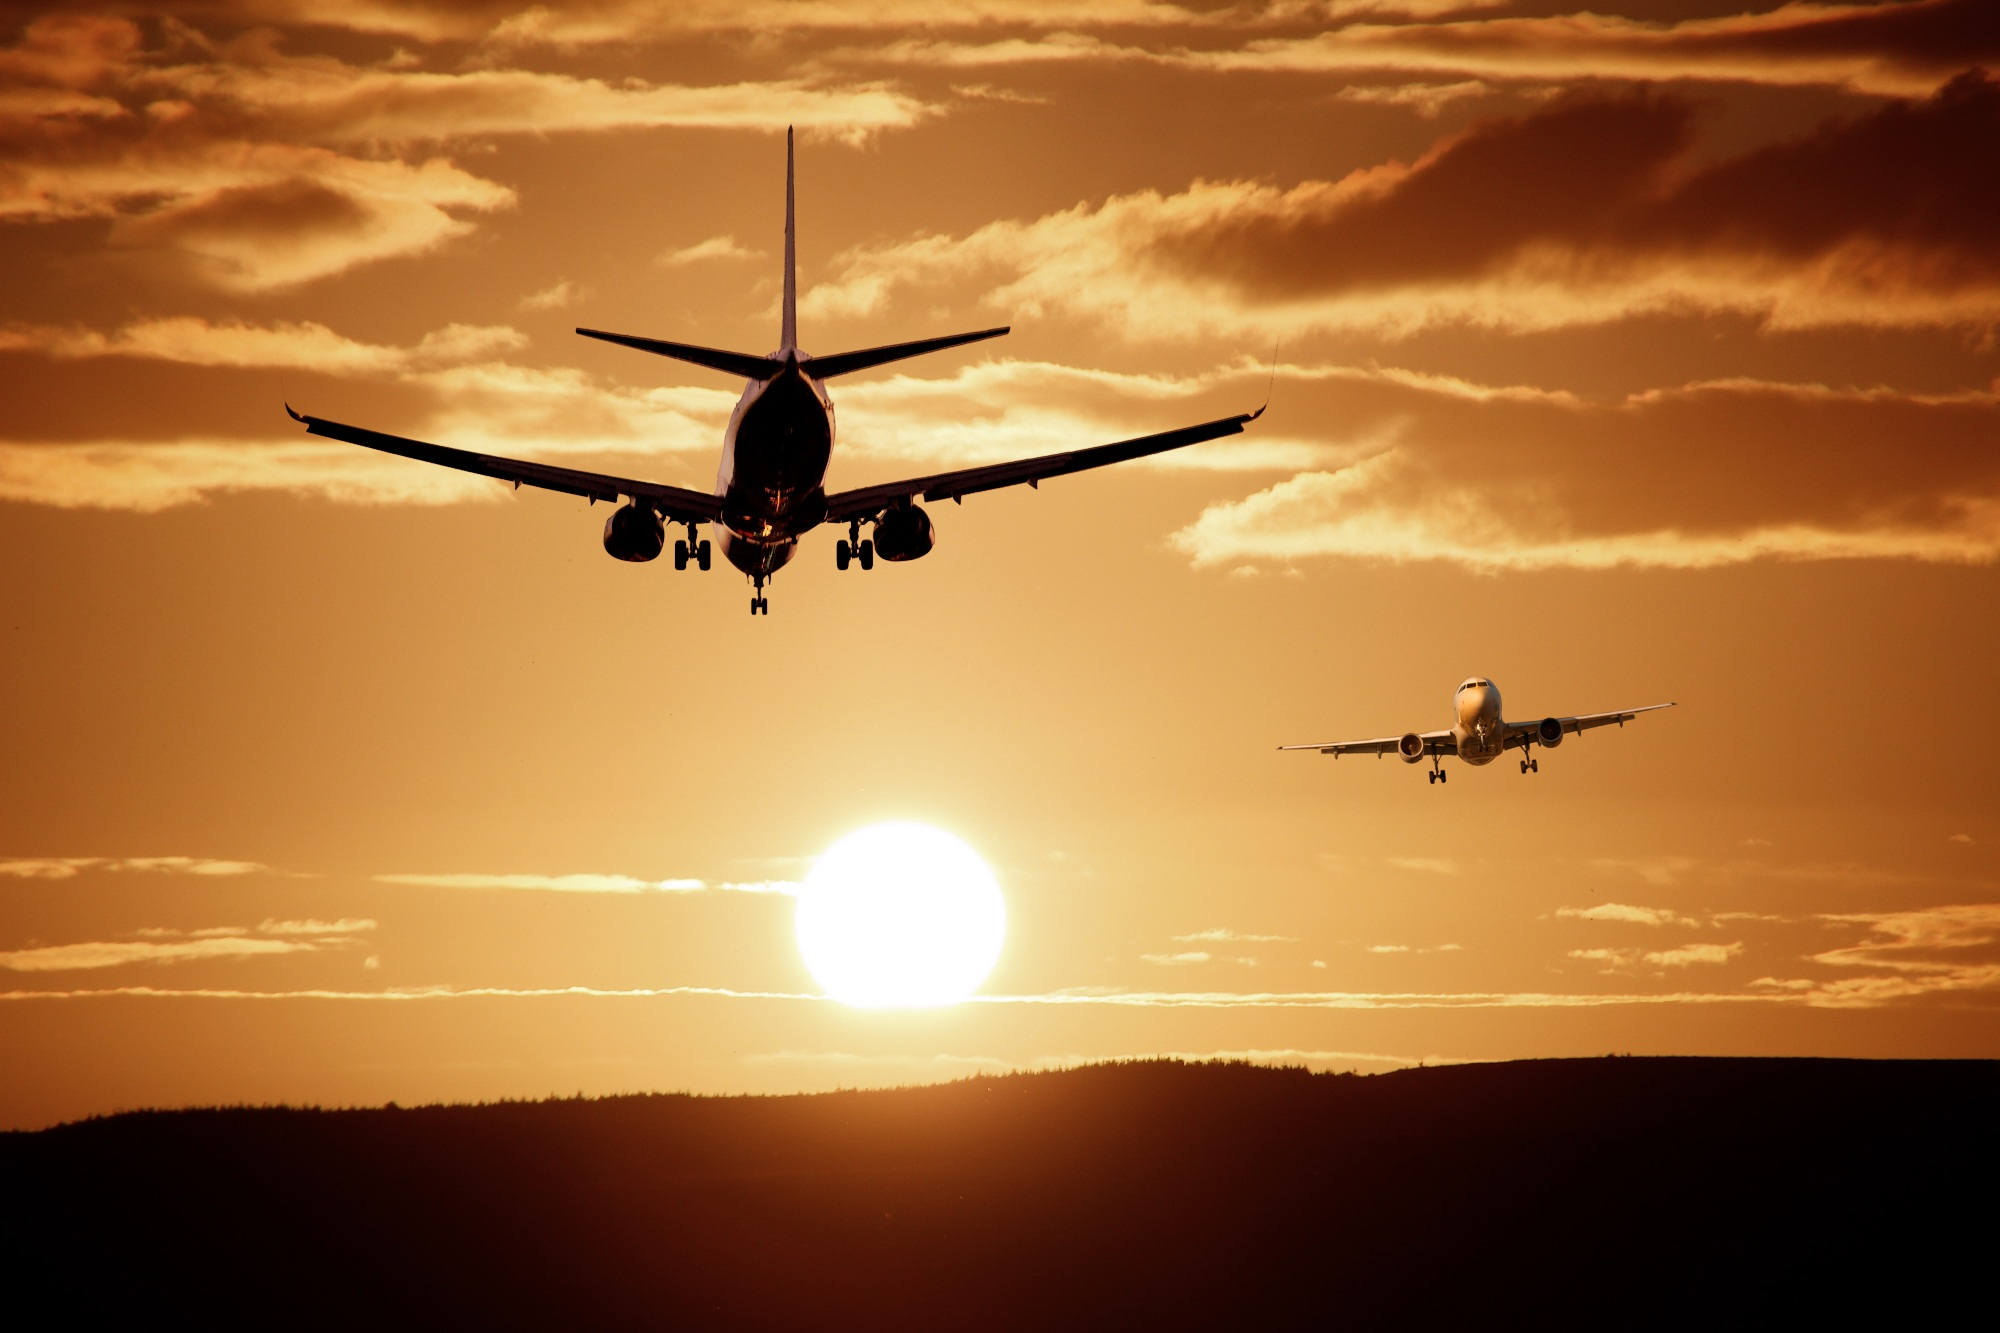 According to the National Civil Aviation Policy 2016, the government will enter into an open sky air service agreement on a reciprocal basis with South Asian Association for Regional Cooperation (SAARC) countries